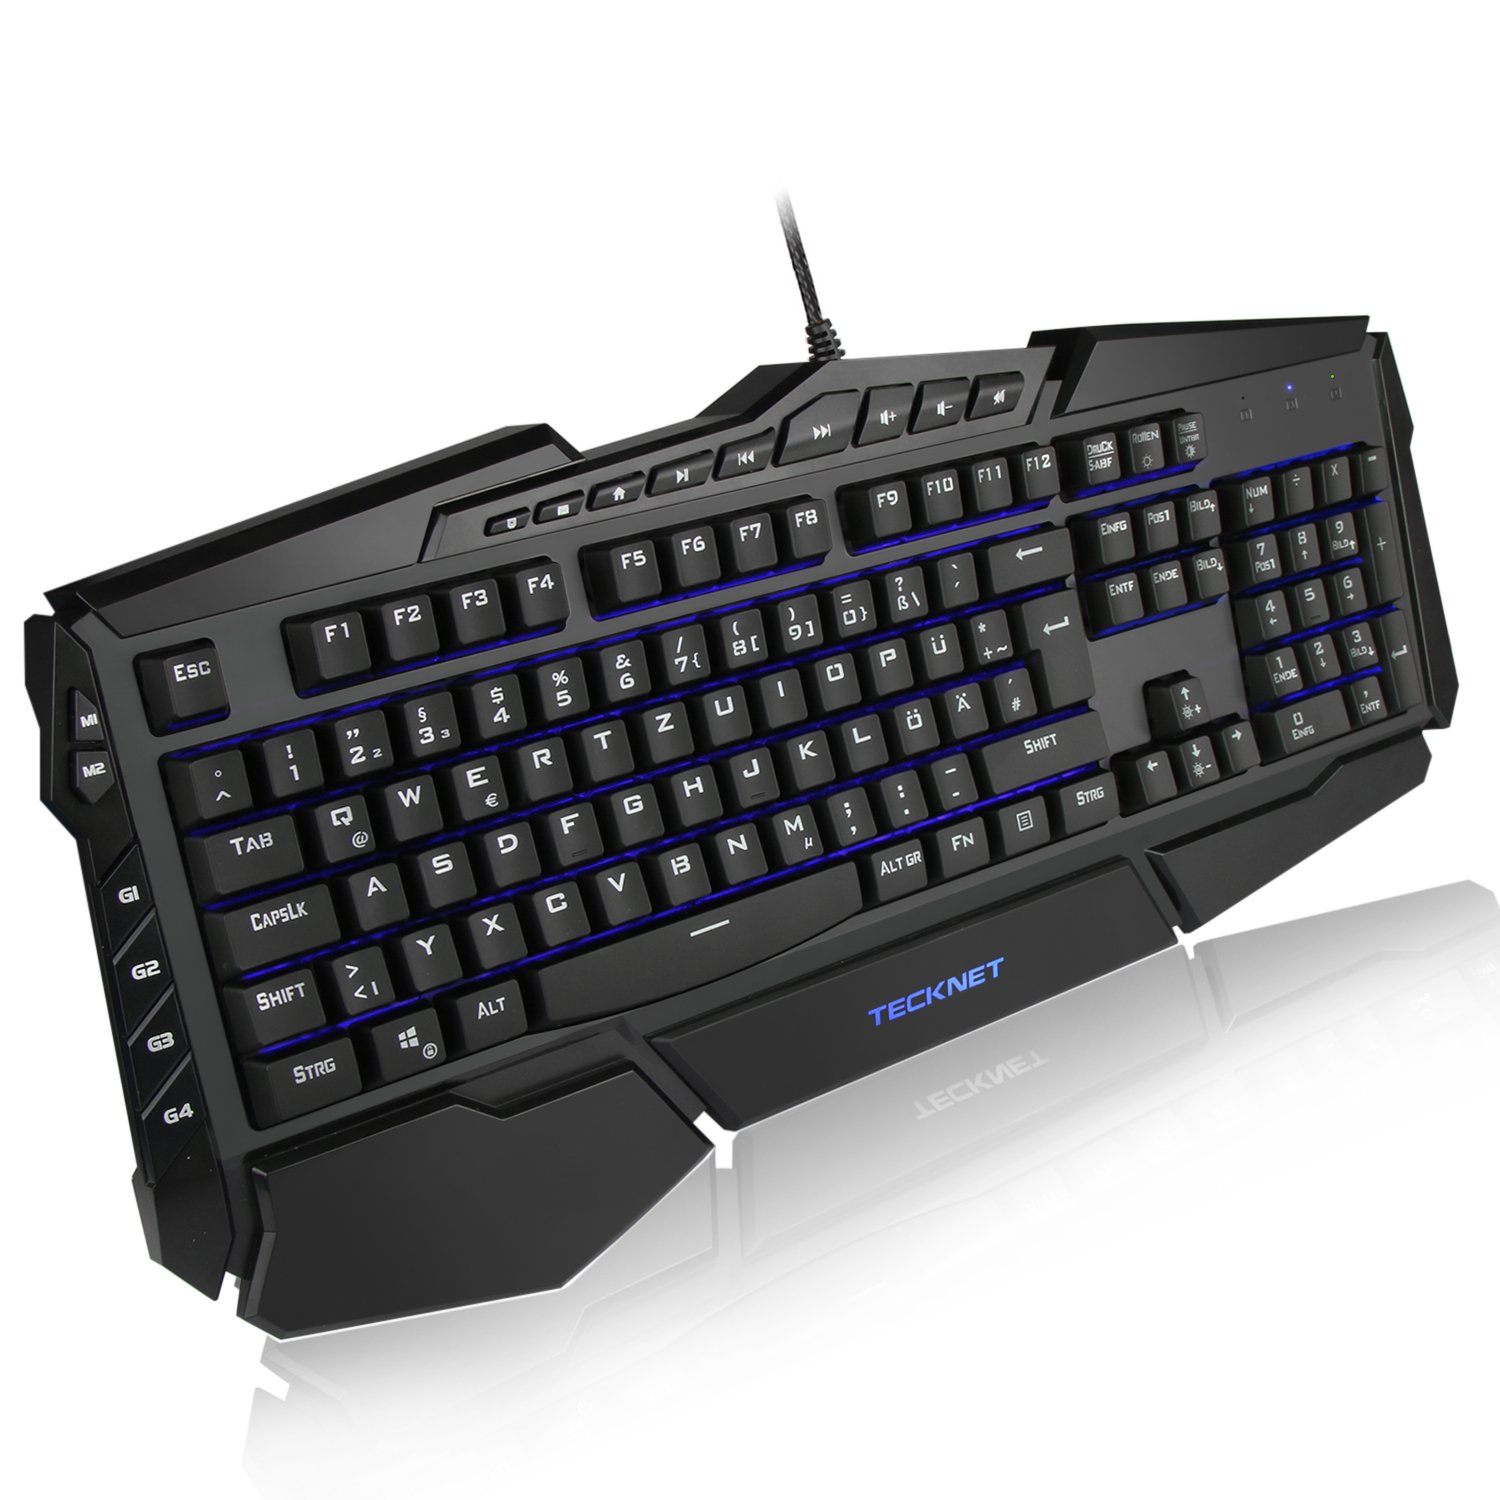 Gaming Tastatur(QWERTZ), TeckNet LED Illuminated Programmierbar Anti-Ghosting Gaming Keyboard mit USB Kabel, 7 Hintergrundfarben, 4 benutzerdefinierte Tasten, Wasserrdicht 846923